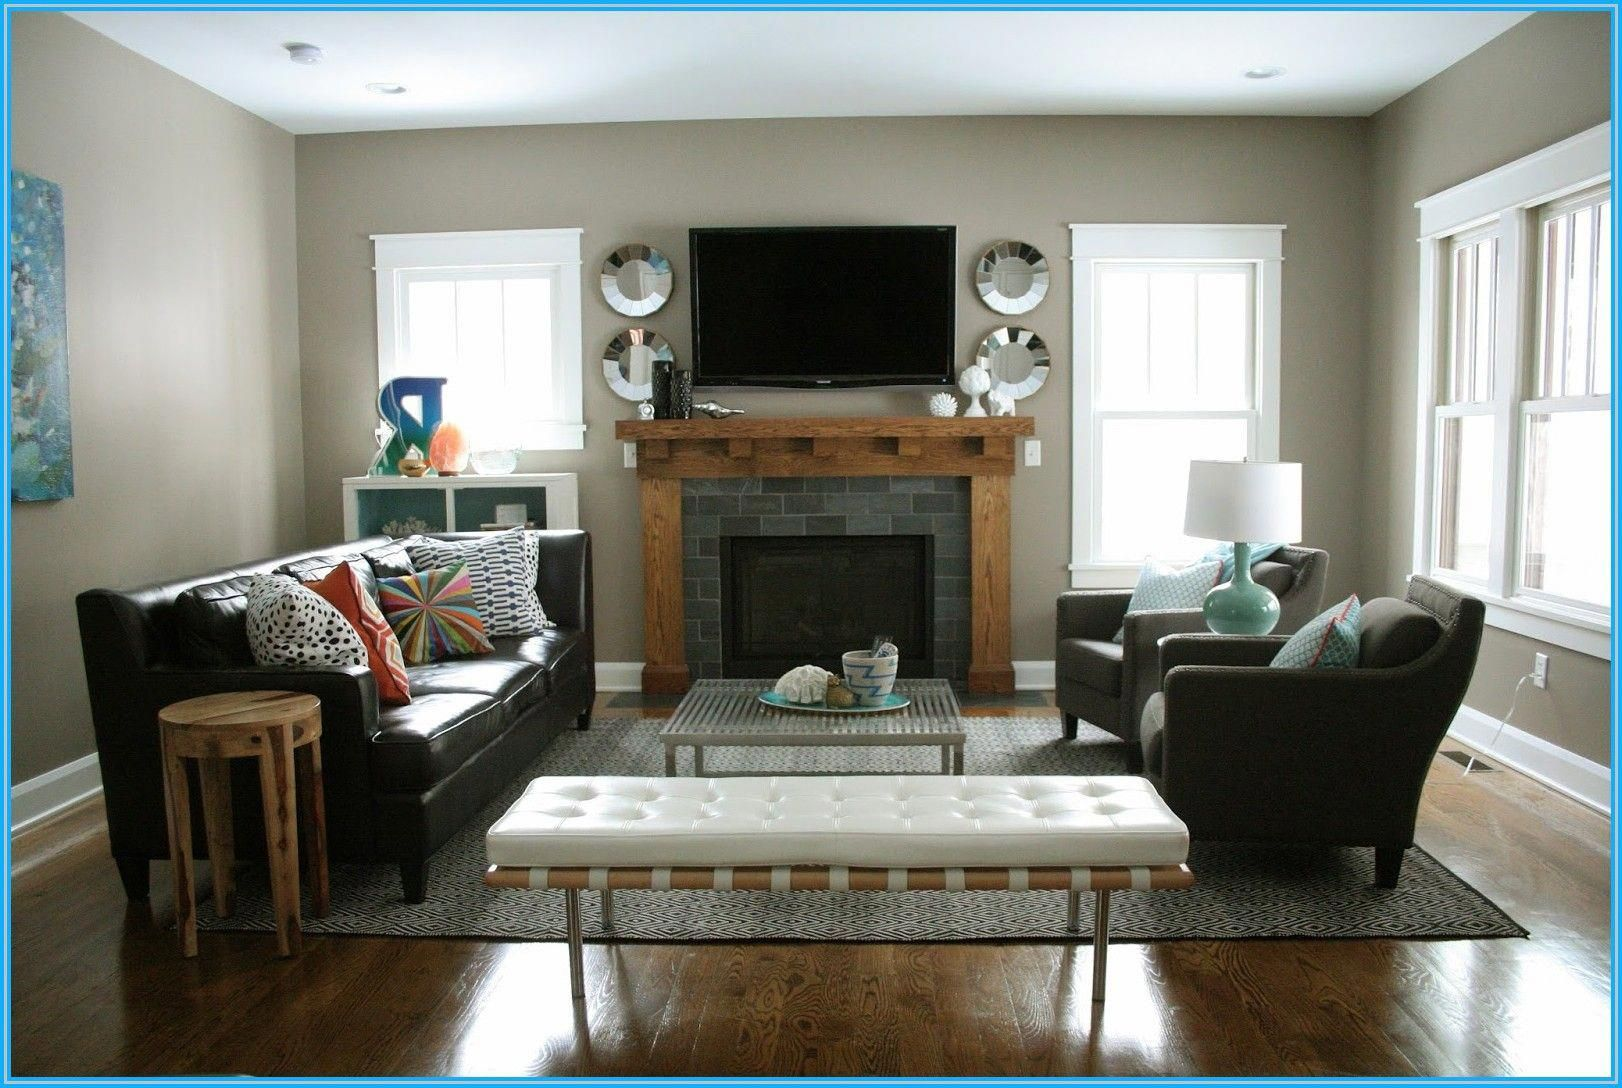 Living Room Layouts With Fireplace And Tv Google Search Livingroomfurniturelayoutap Livingroom Layout Small Living Room Layout Classic Furniture Living Room